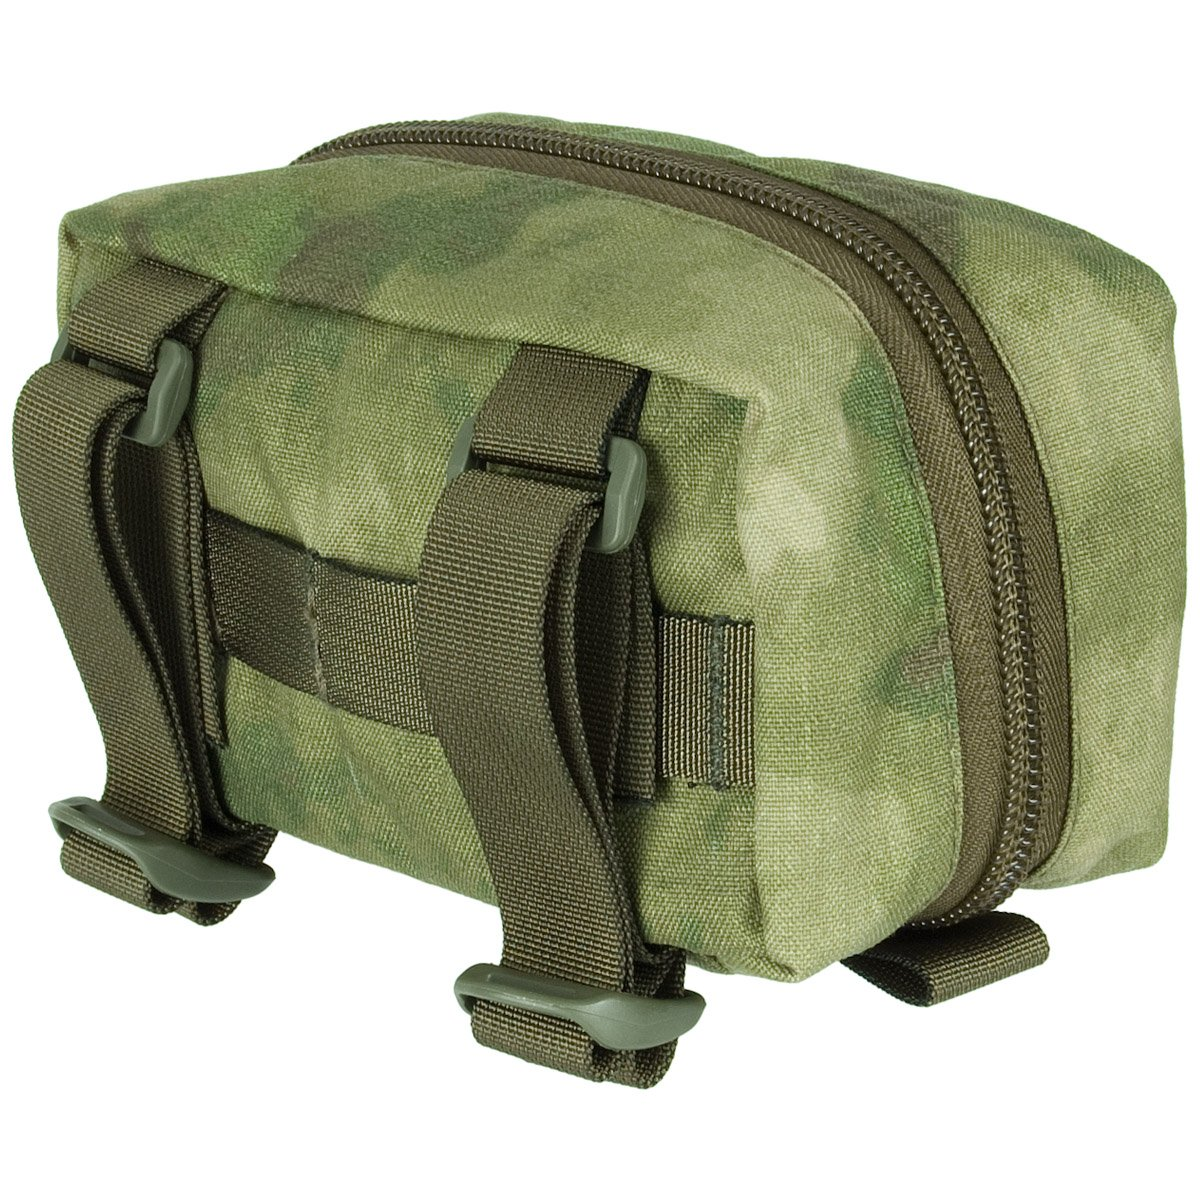 Wisport EMT Pouch MOLLE A-TACS FG by Wisport (Image #2)